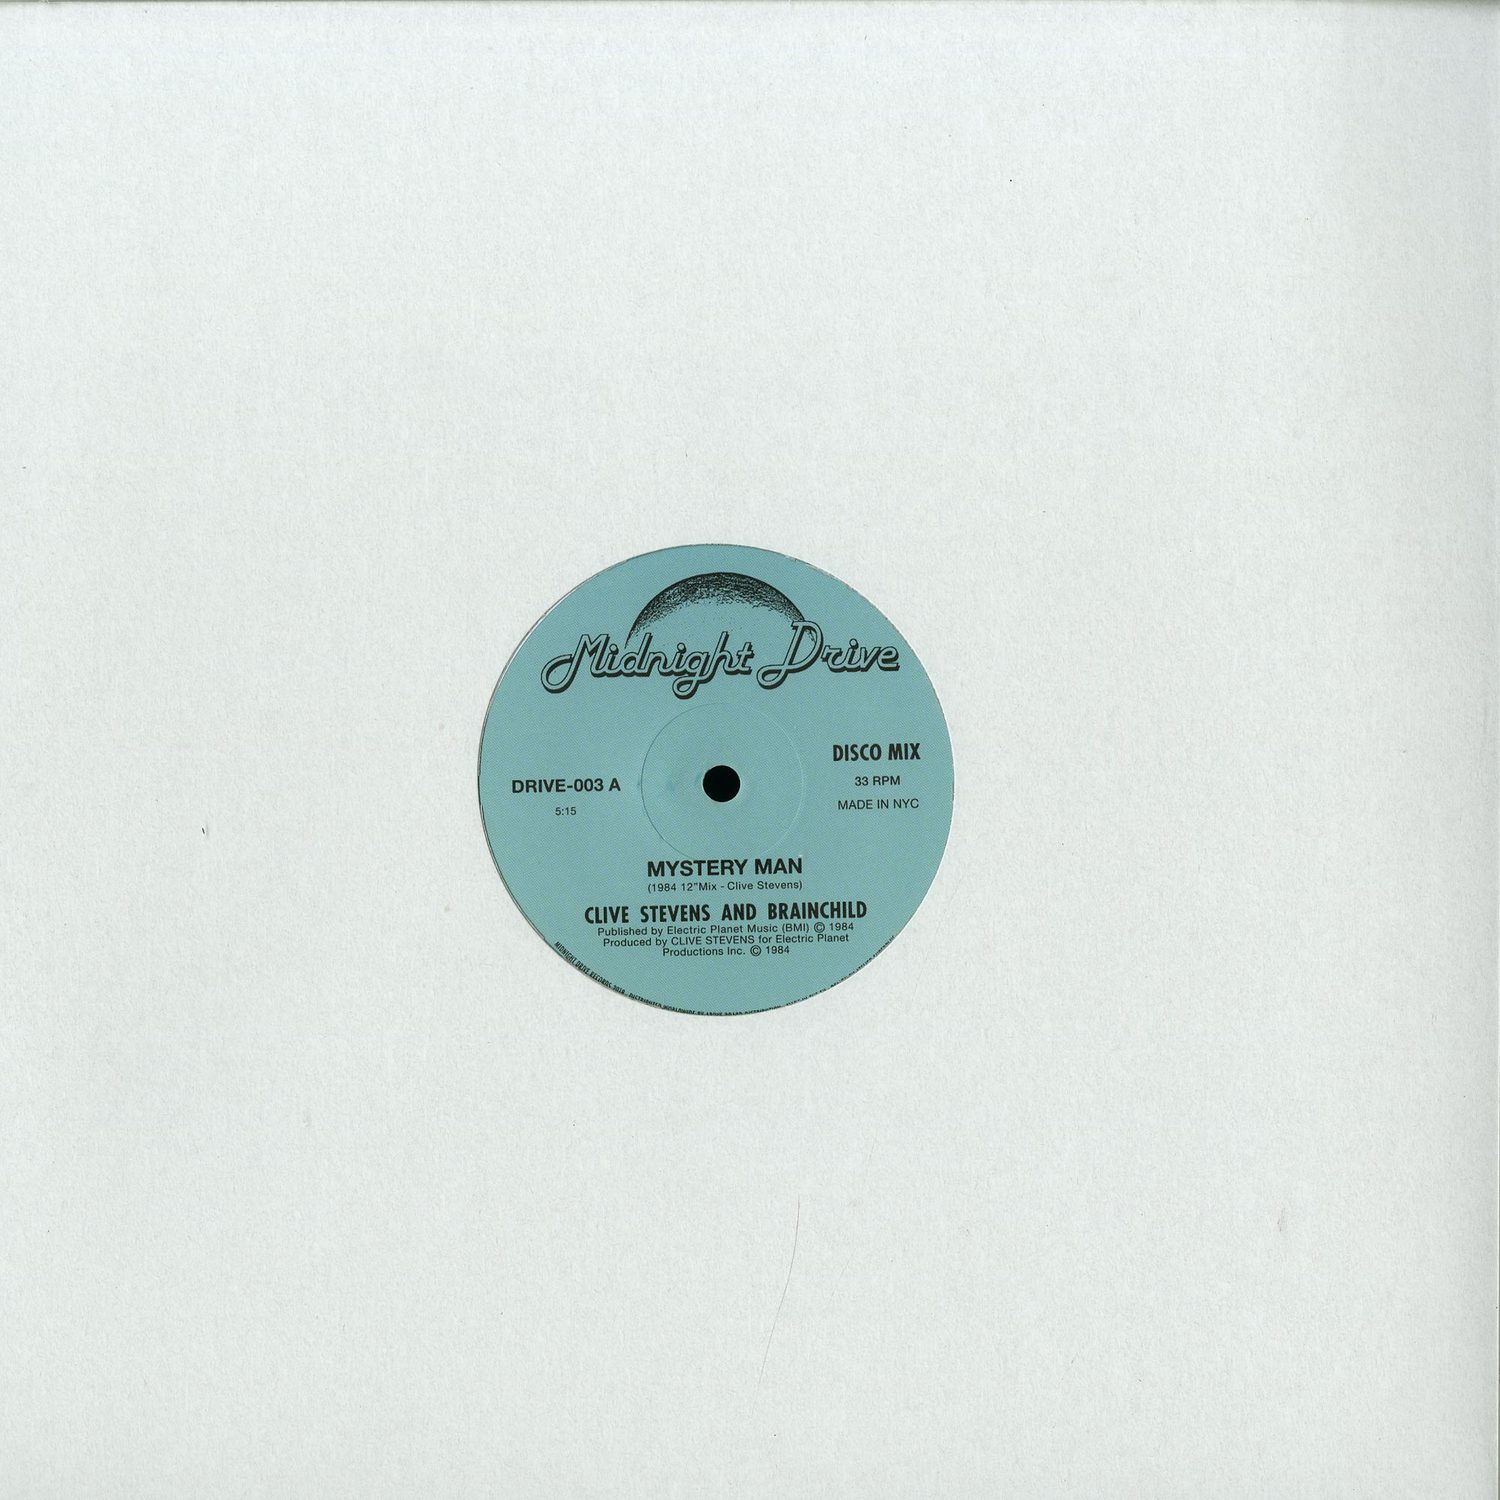 Clive Stevens And Brainchild - MYSTERY MAN